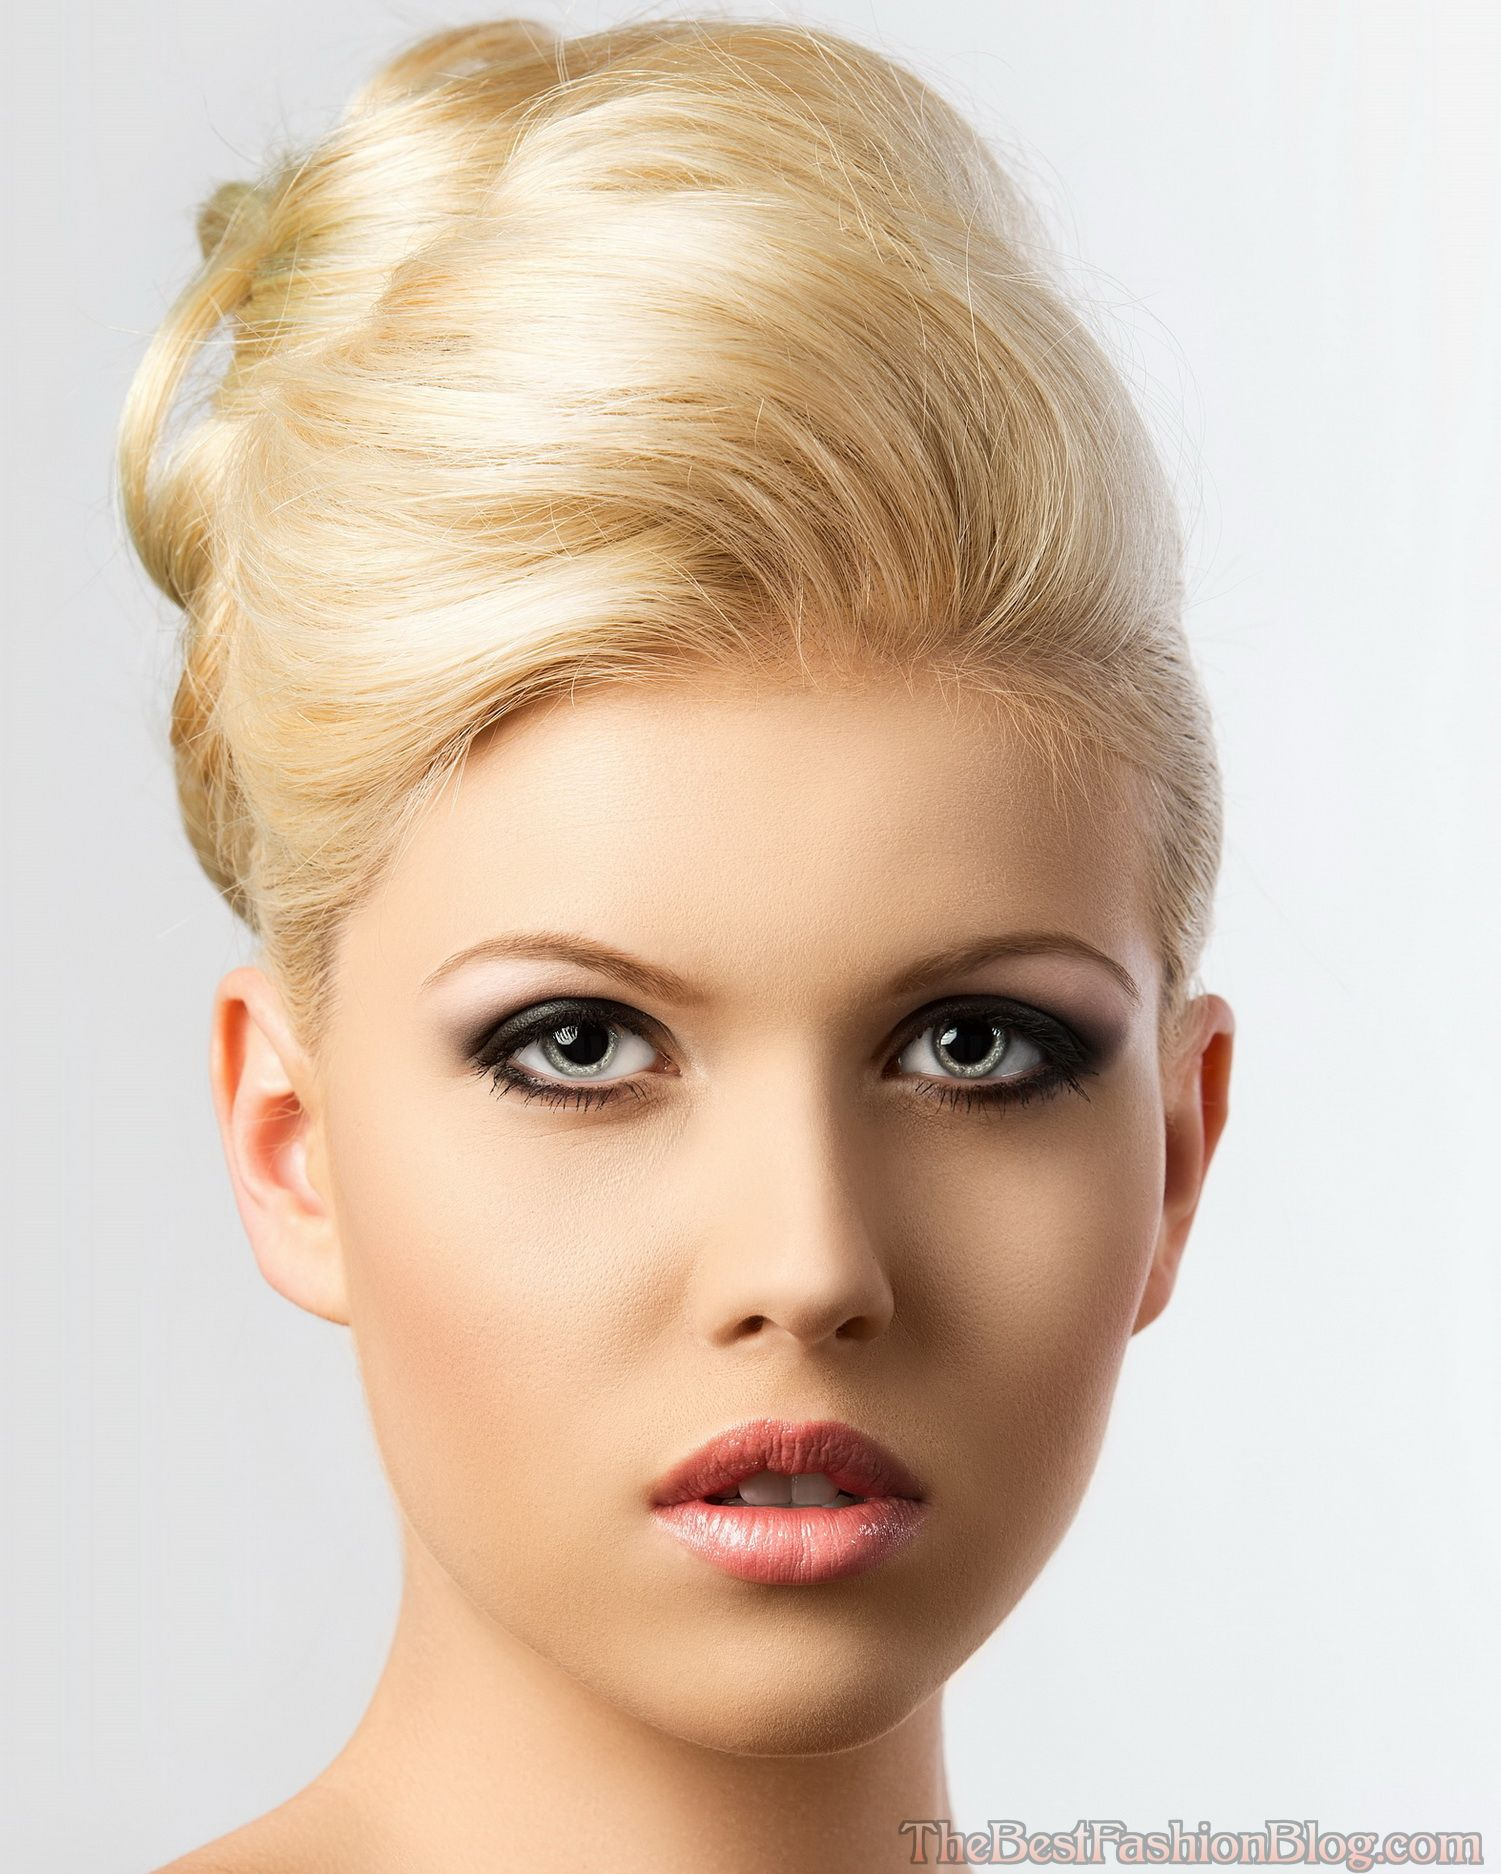 Beehive-Hairstyles-Are-In-Style-For-2015-6